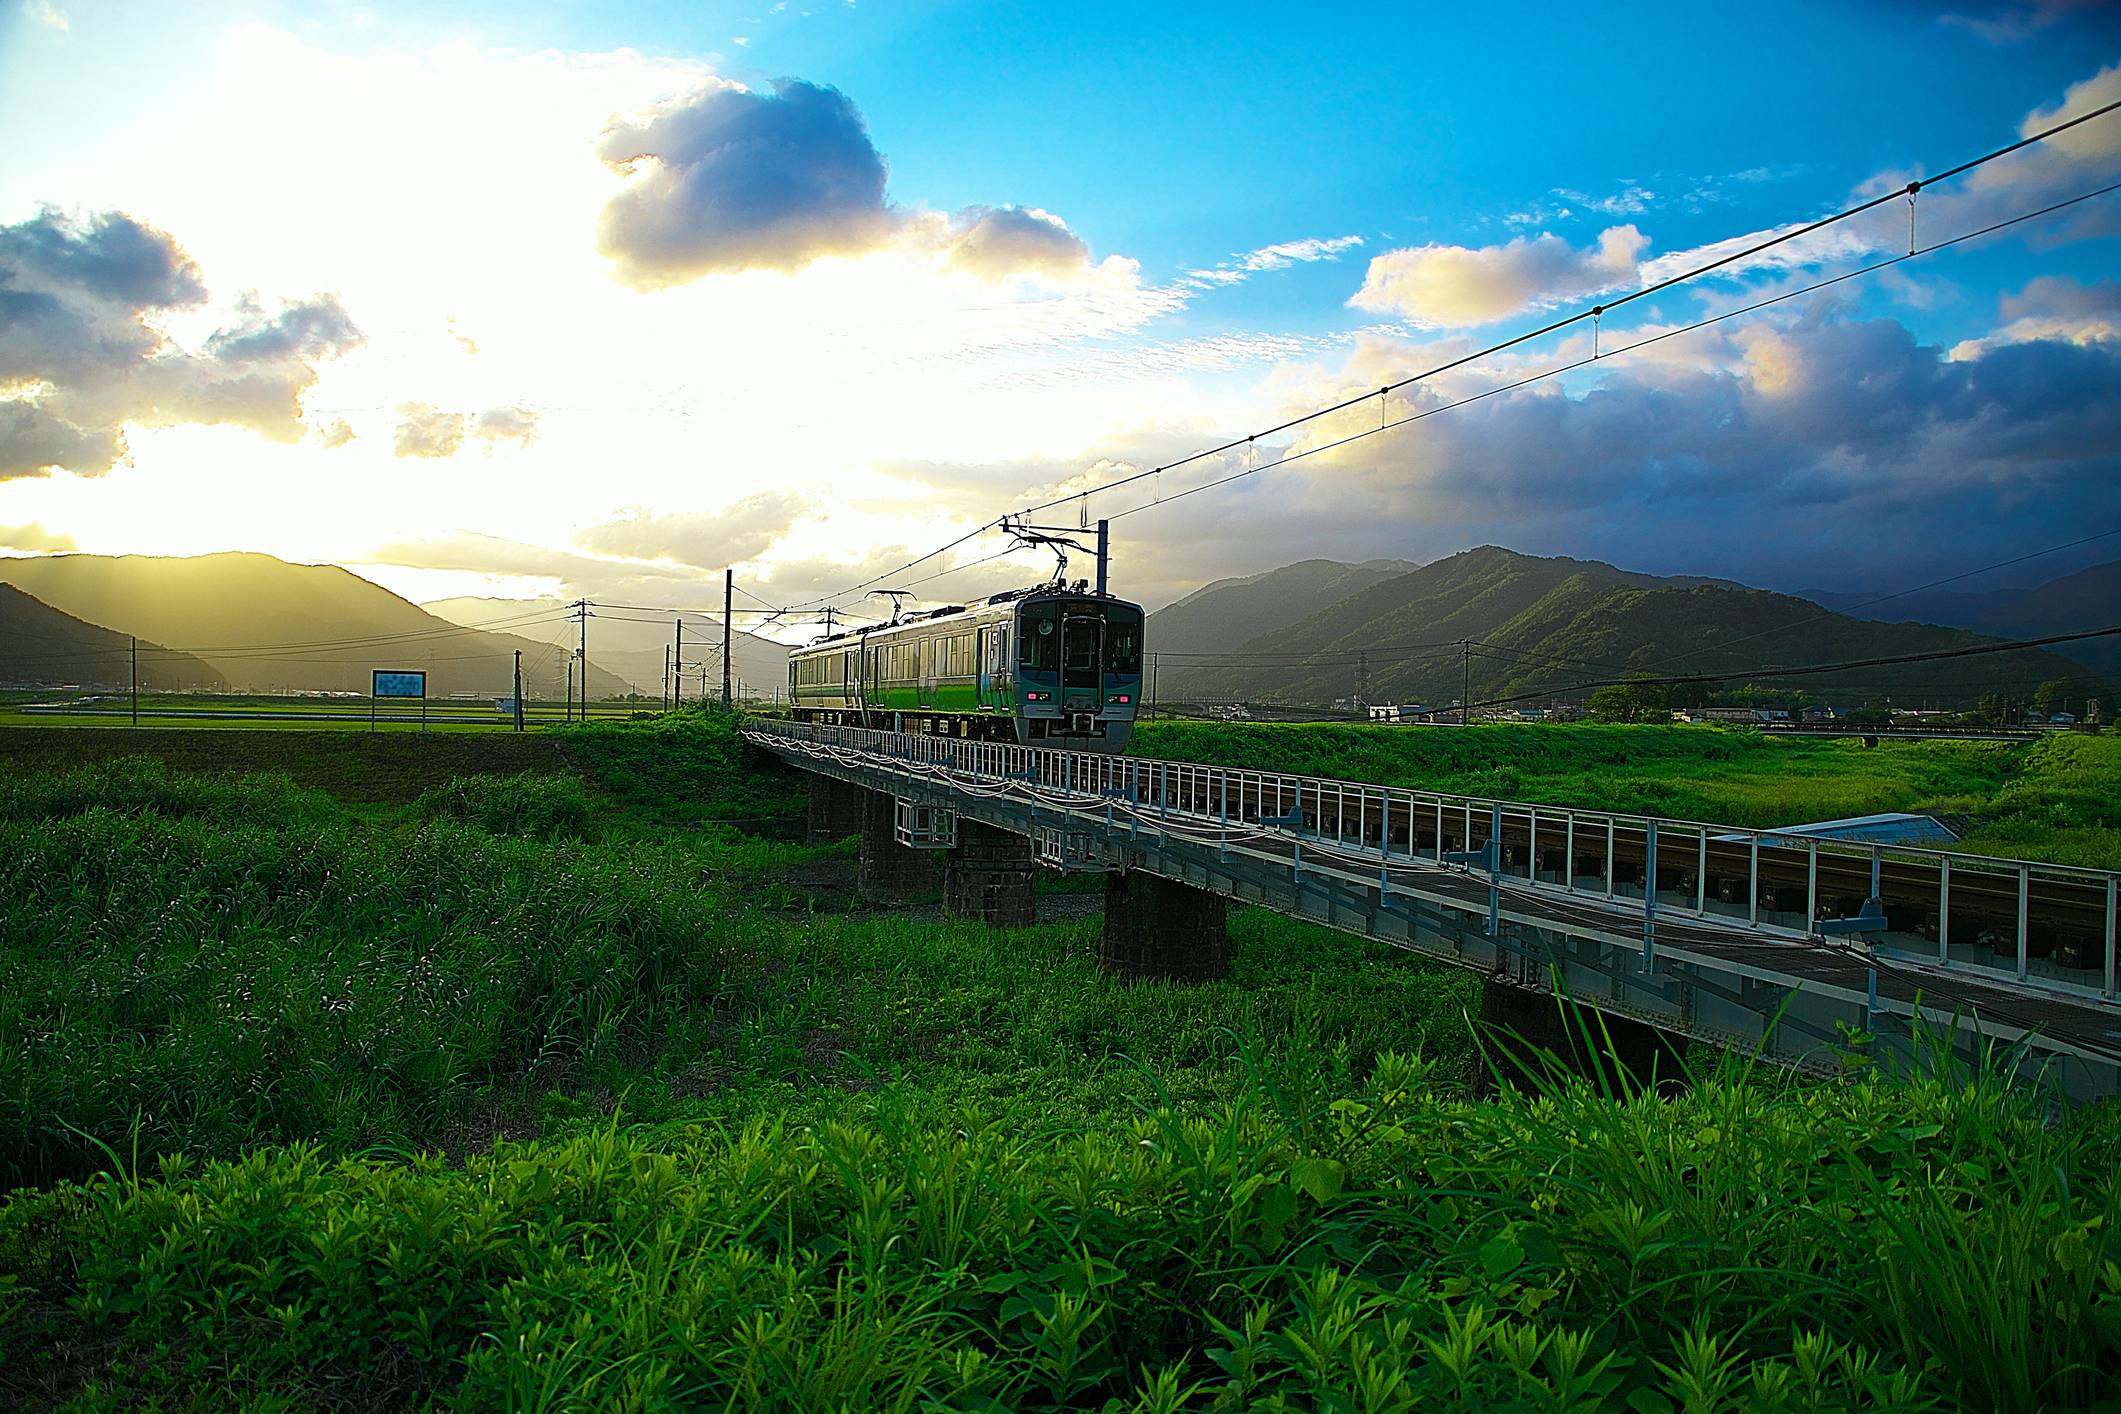 Japanese Communist Party lawmaker and avowed railway enthusiast Taku Yamazoe was warned by local police after he trespassed briefly on some rural railroad tracks. Ten months later, the incident was brought back into the spotlight by prosecutors, other politicians and the press.   GETTY IMAGES